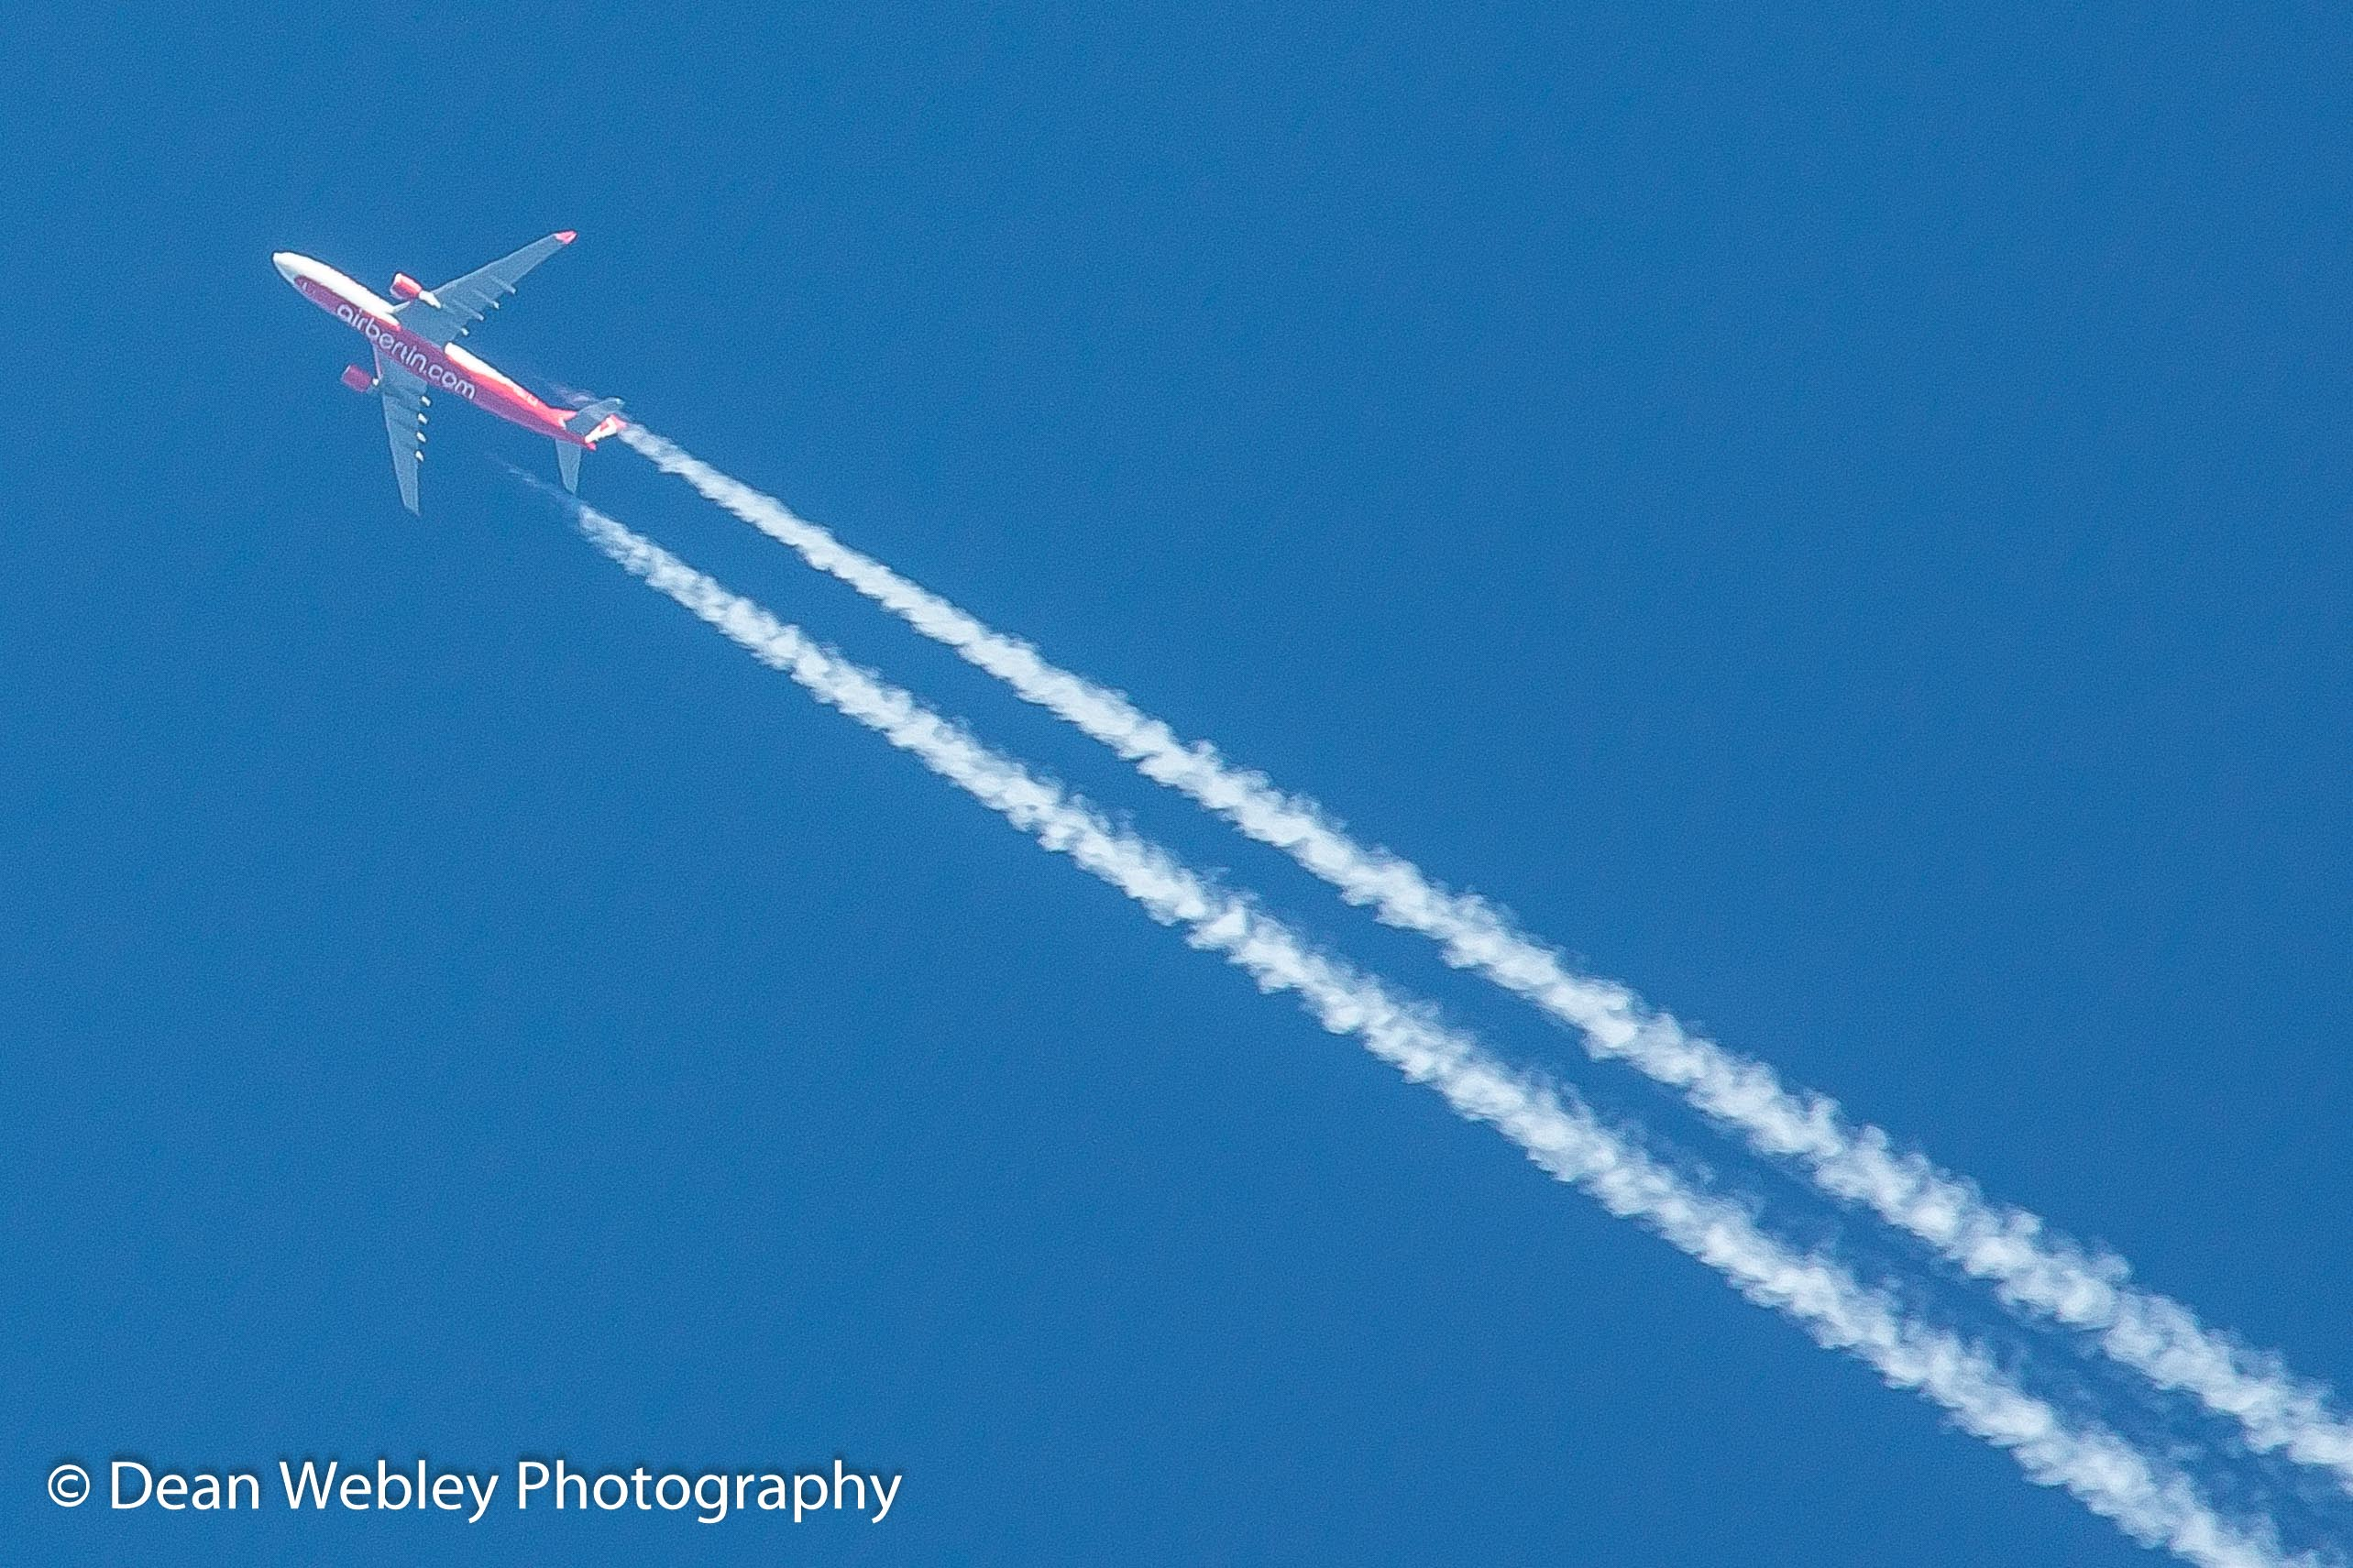 Air Berlin areoplane in the sky